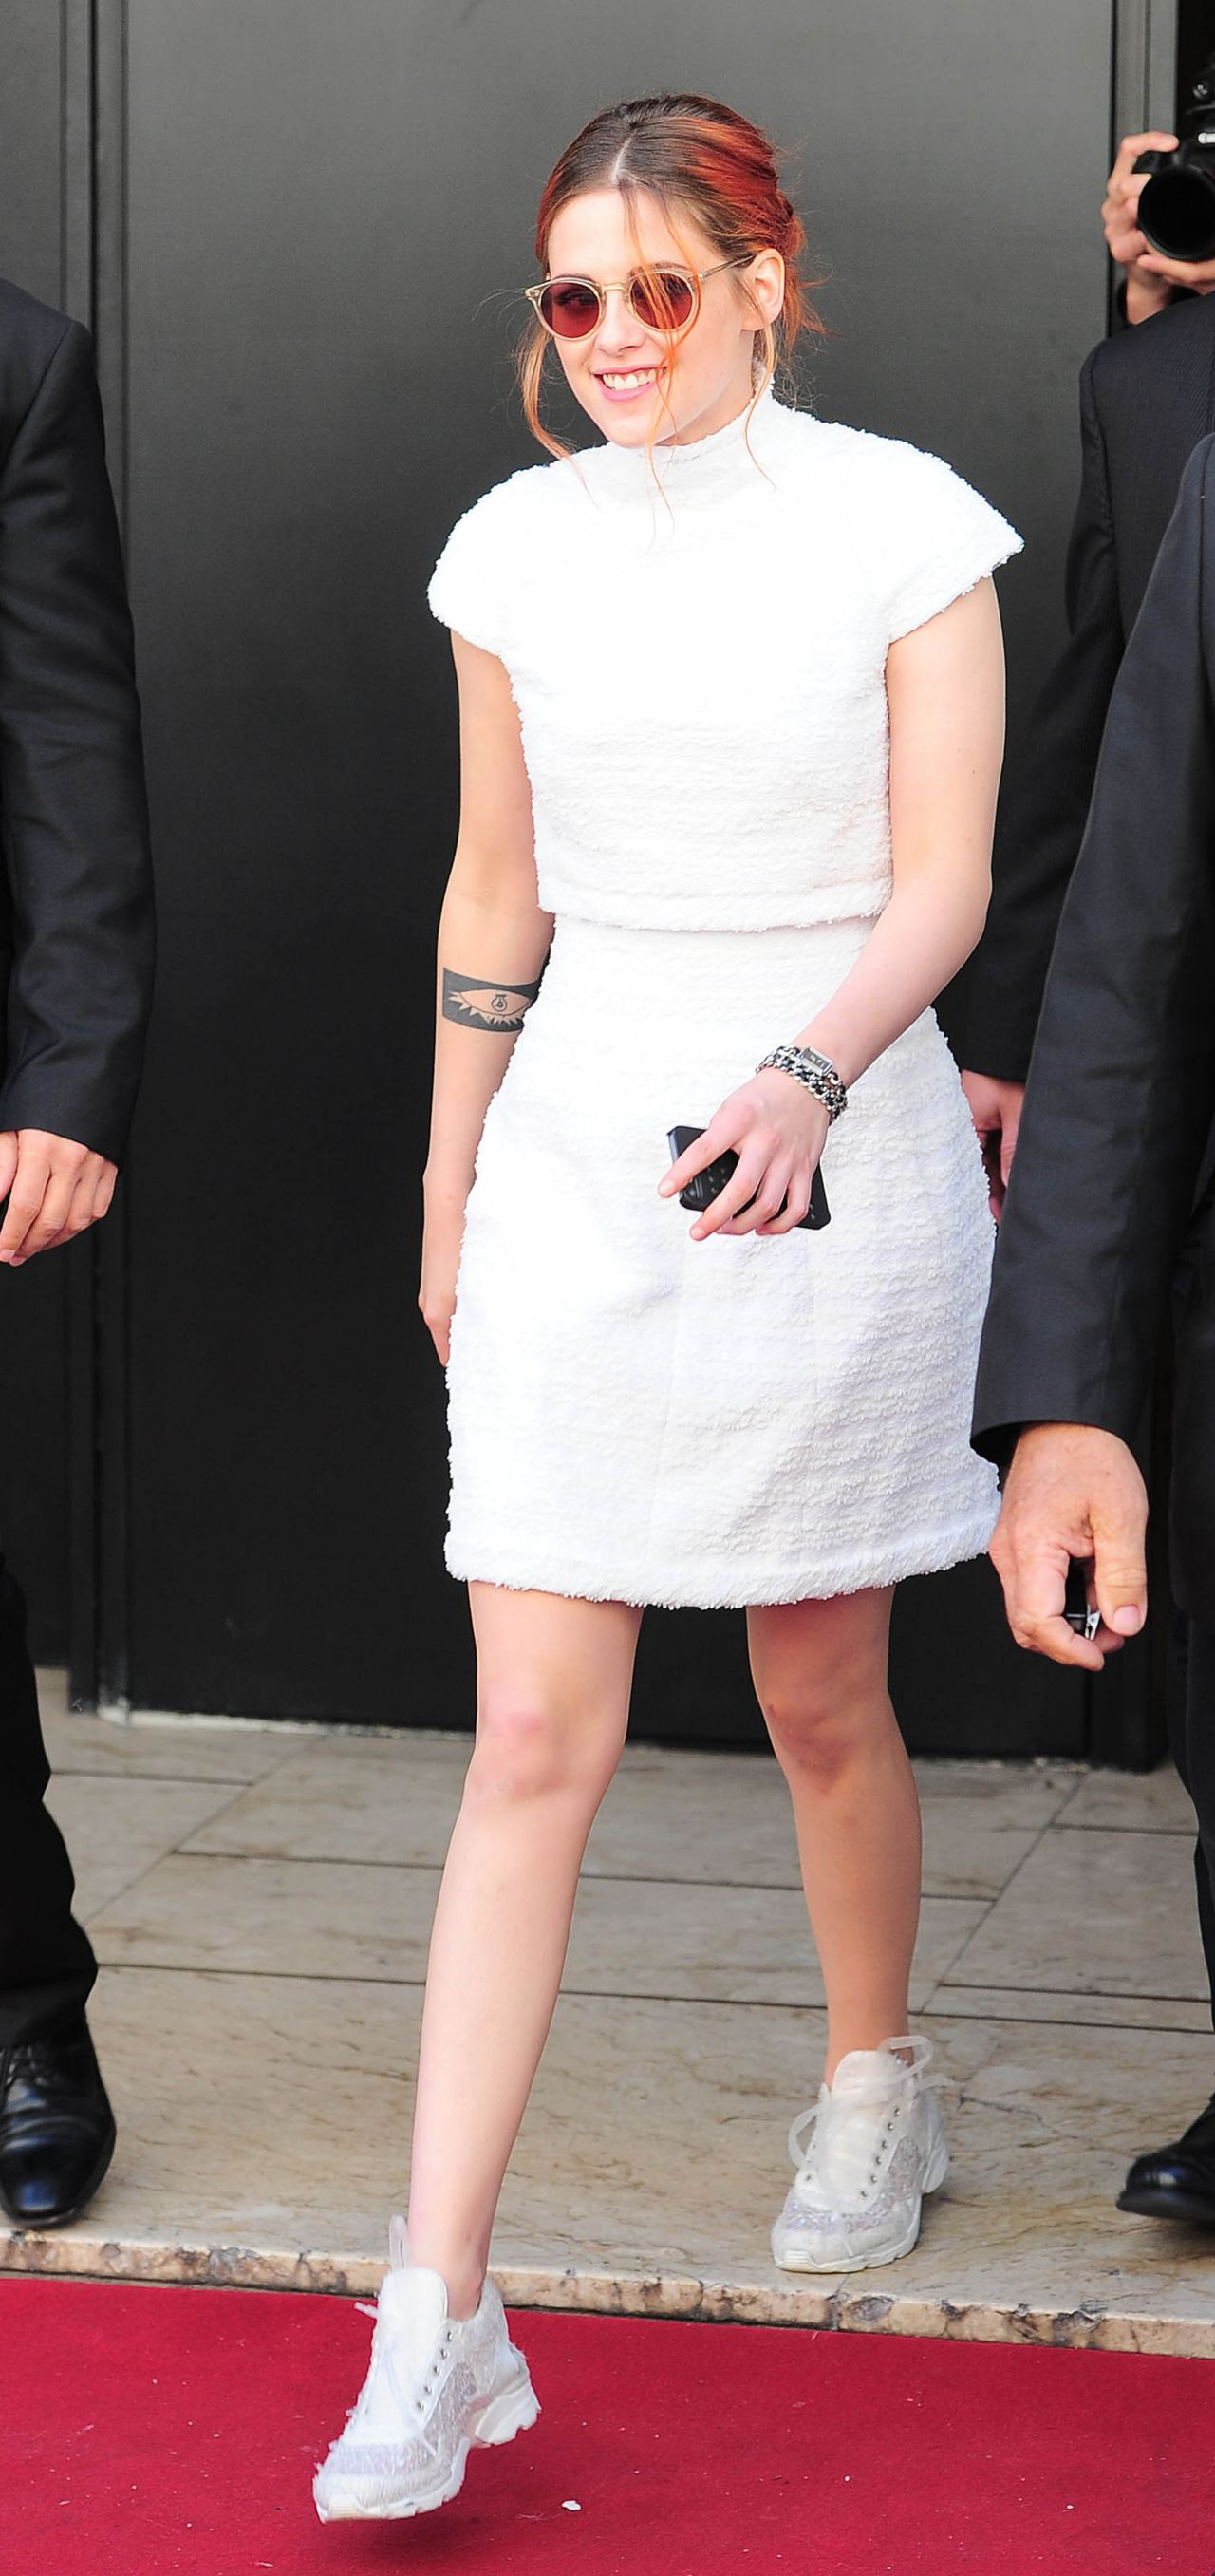 Kristen Stewart in France - Outside Her Hotel in Cannes - May 2014